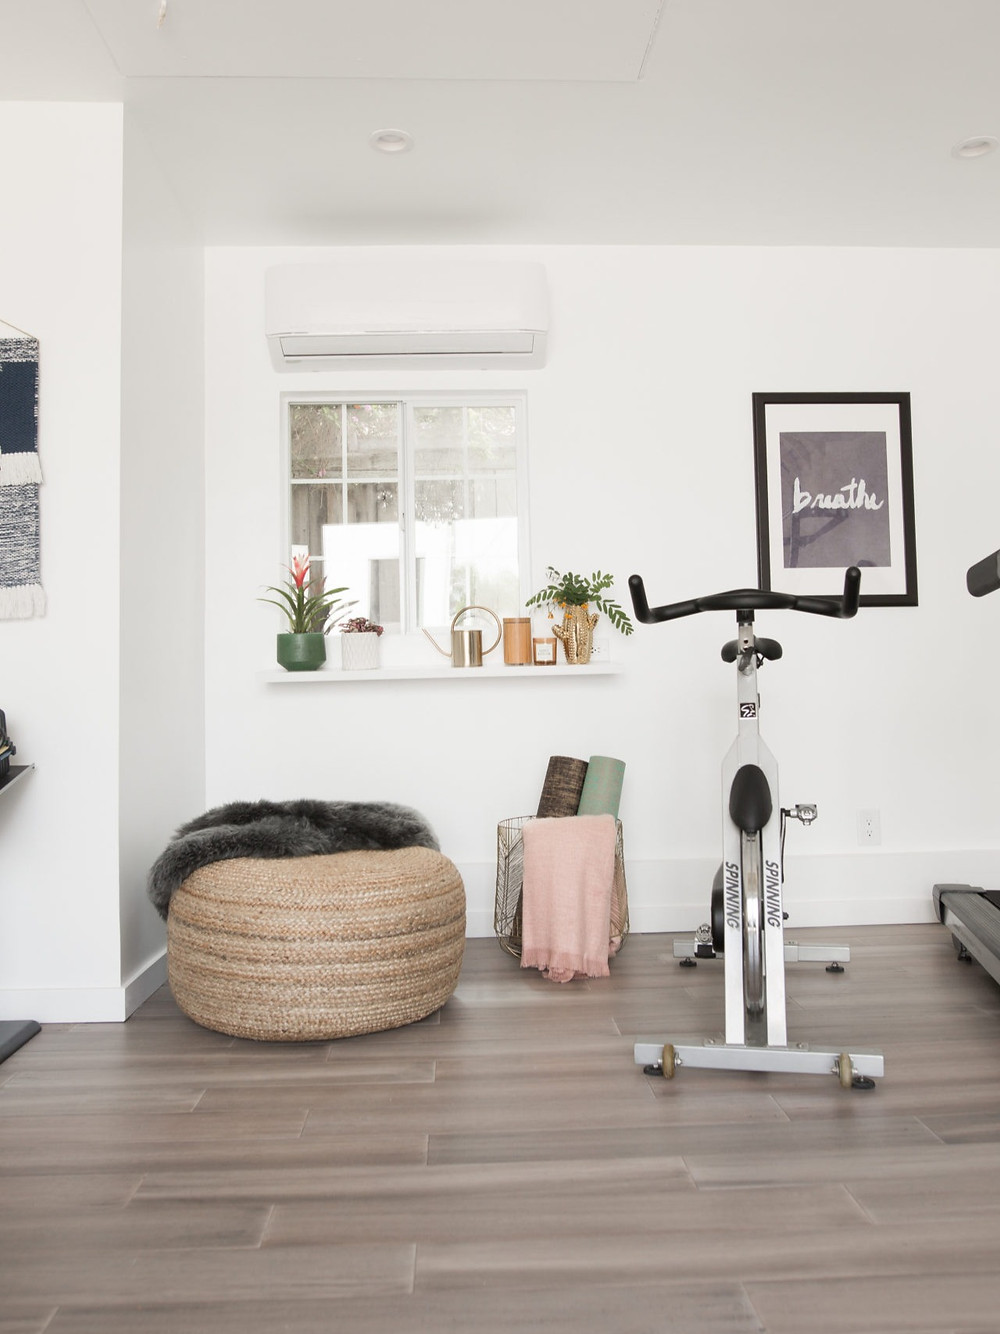 bright white home gym with decor and artwork